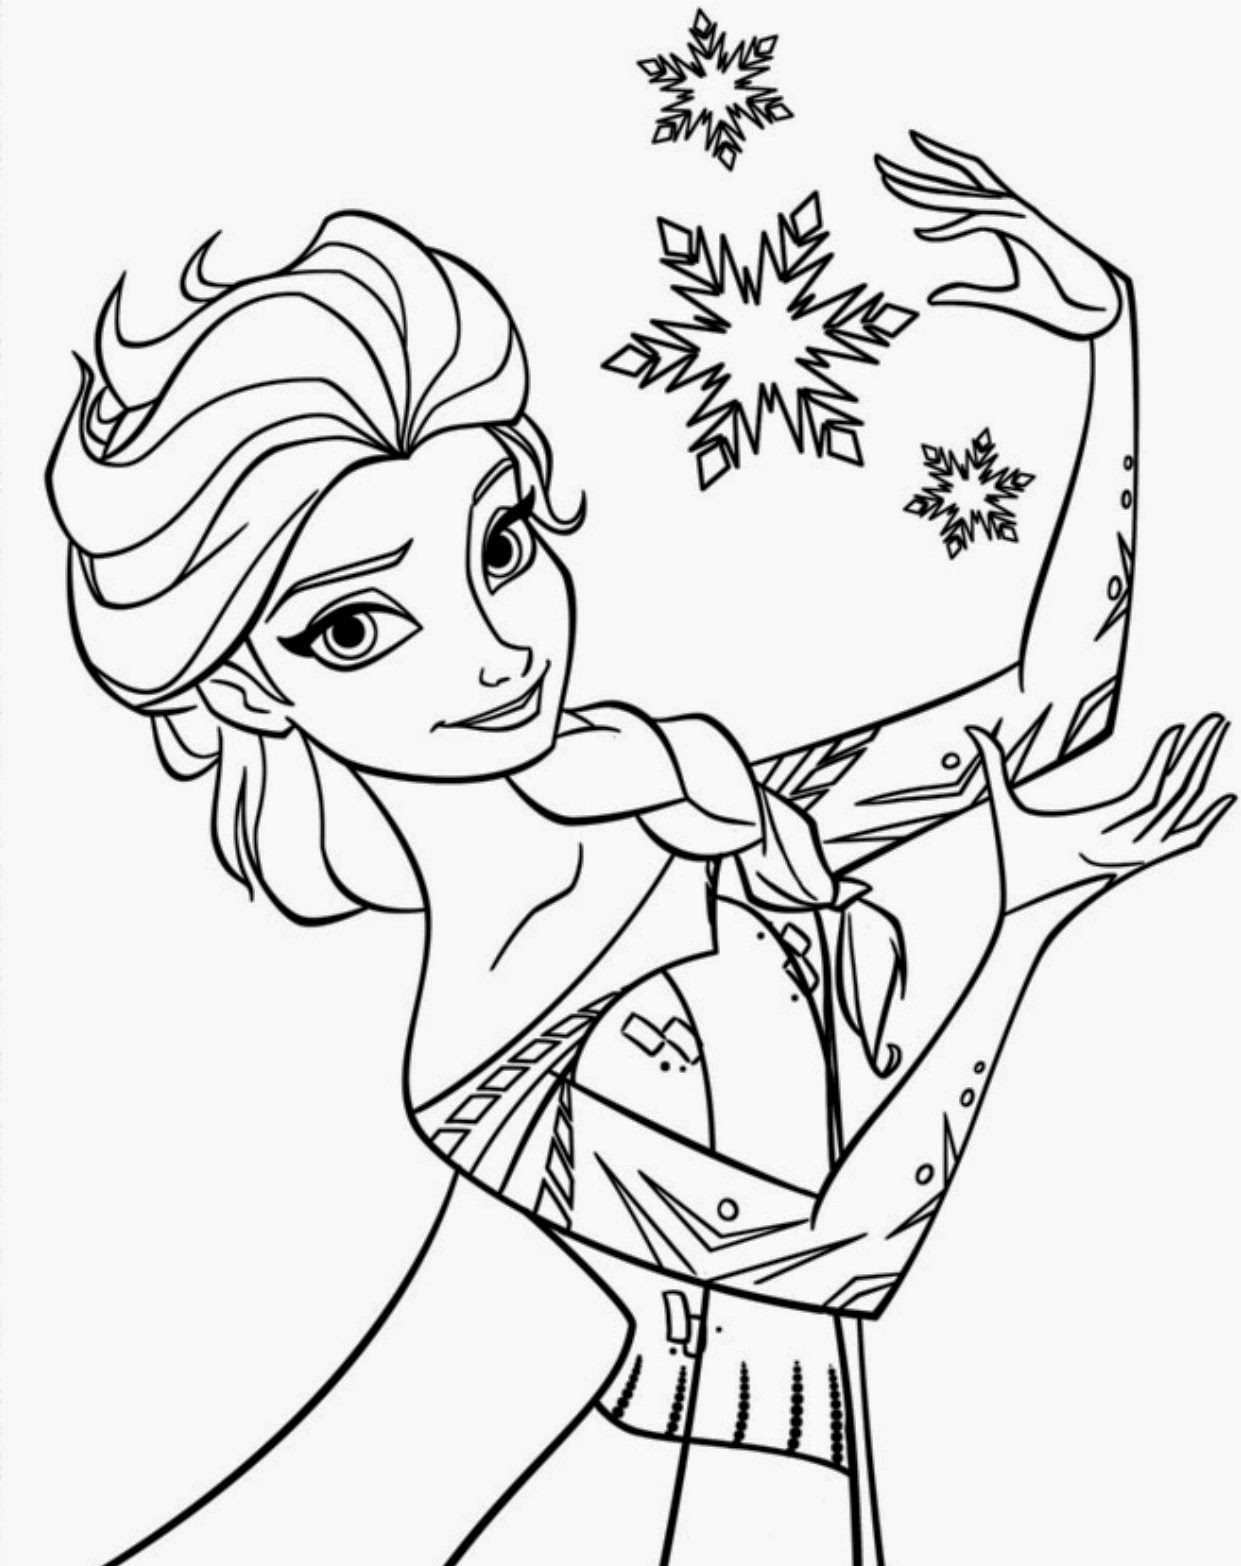 free frozen coloring pages peaceful free printable frozen coloring pages russell free pages frozen coloring